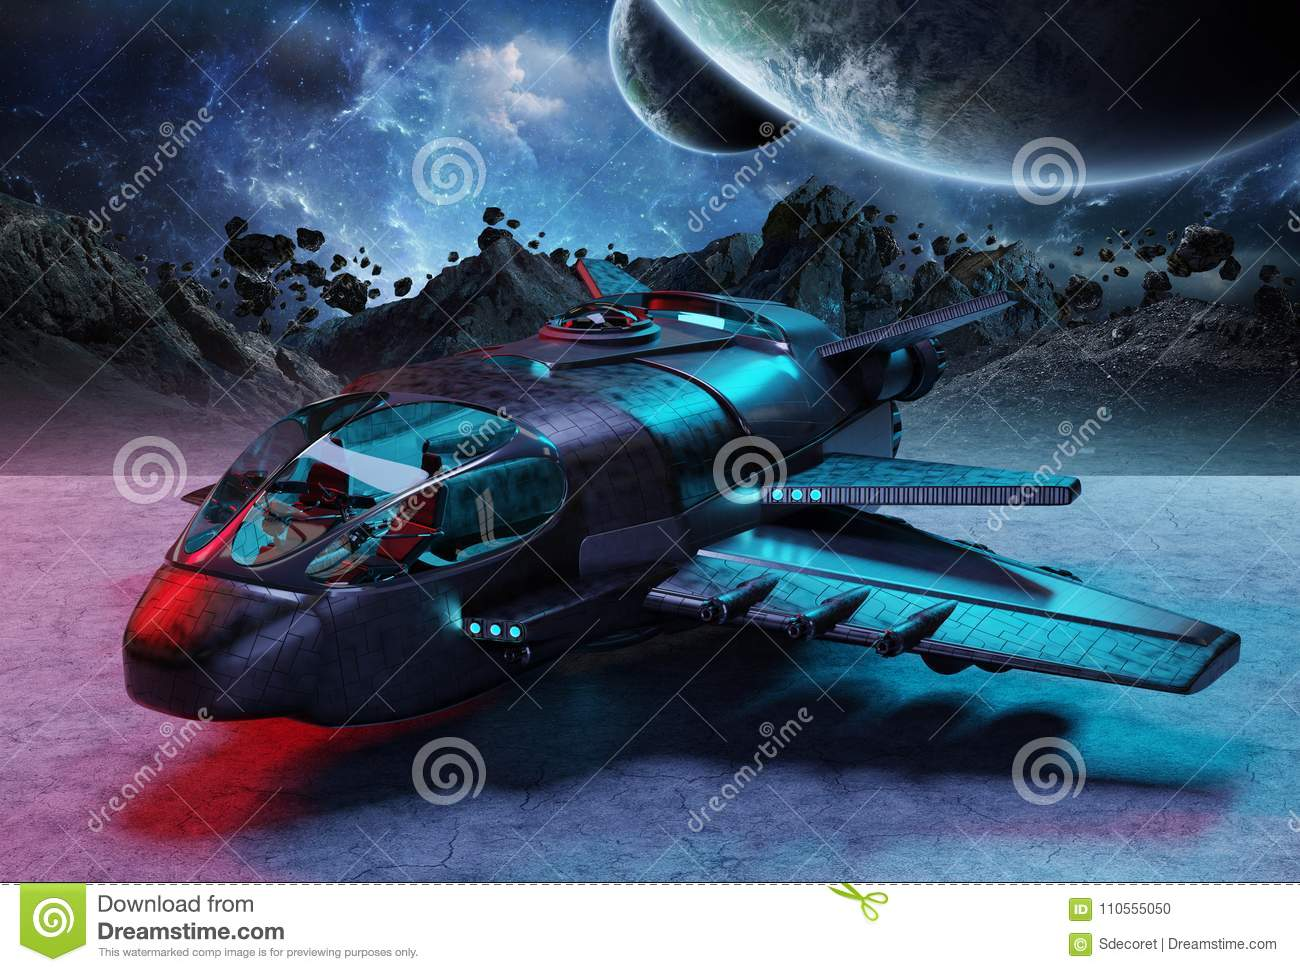 Futuristic spacecraft on planet background 3D rendering elements